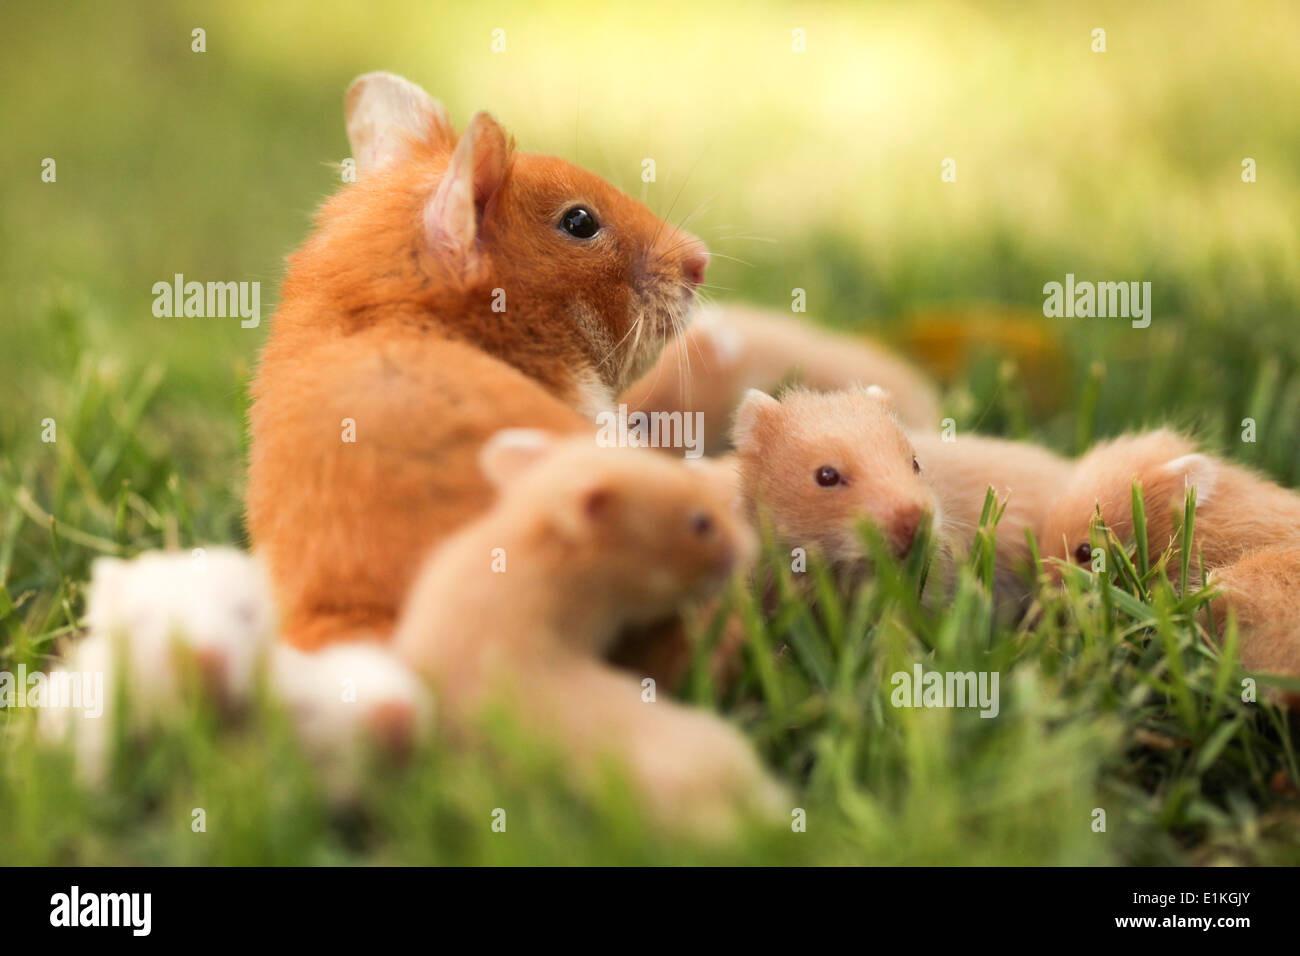 Golden or Syrian hamster (Mesocricetus auratus) with her young litter on grass. - Stock Image